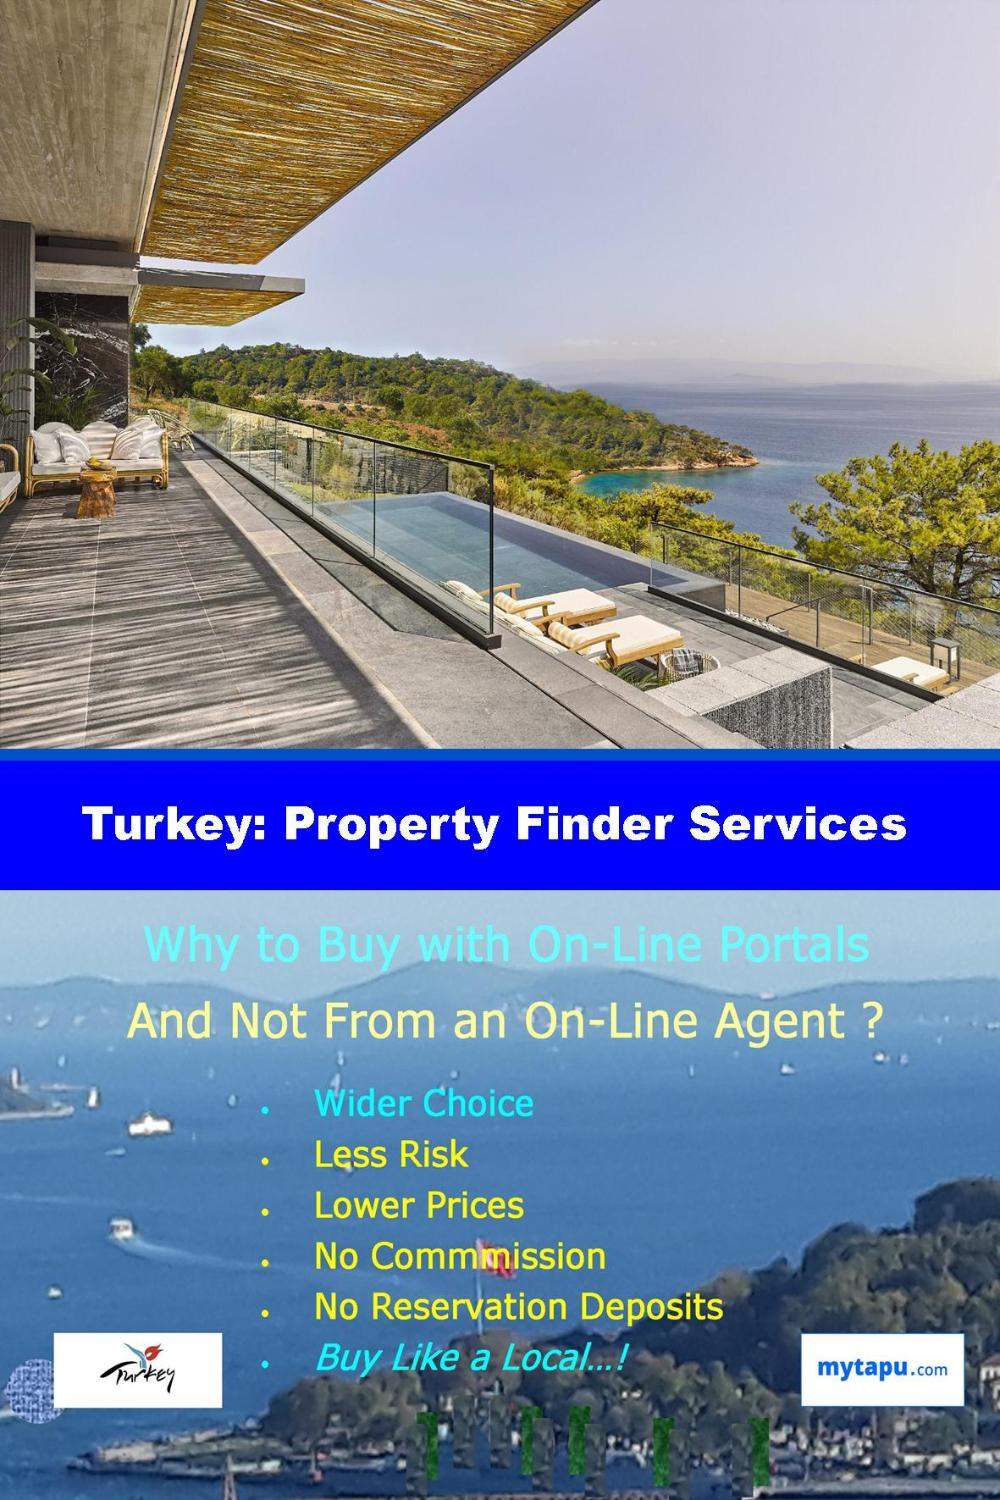 Exclusive Luxury Property for Investment in Turkey's Prime Coastal  Locations